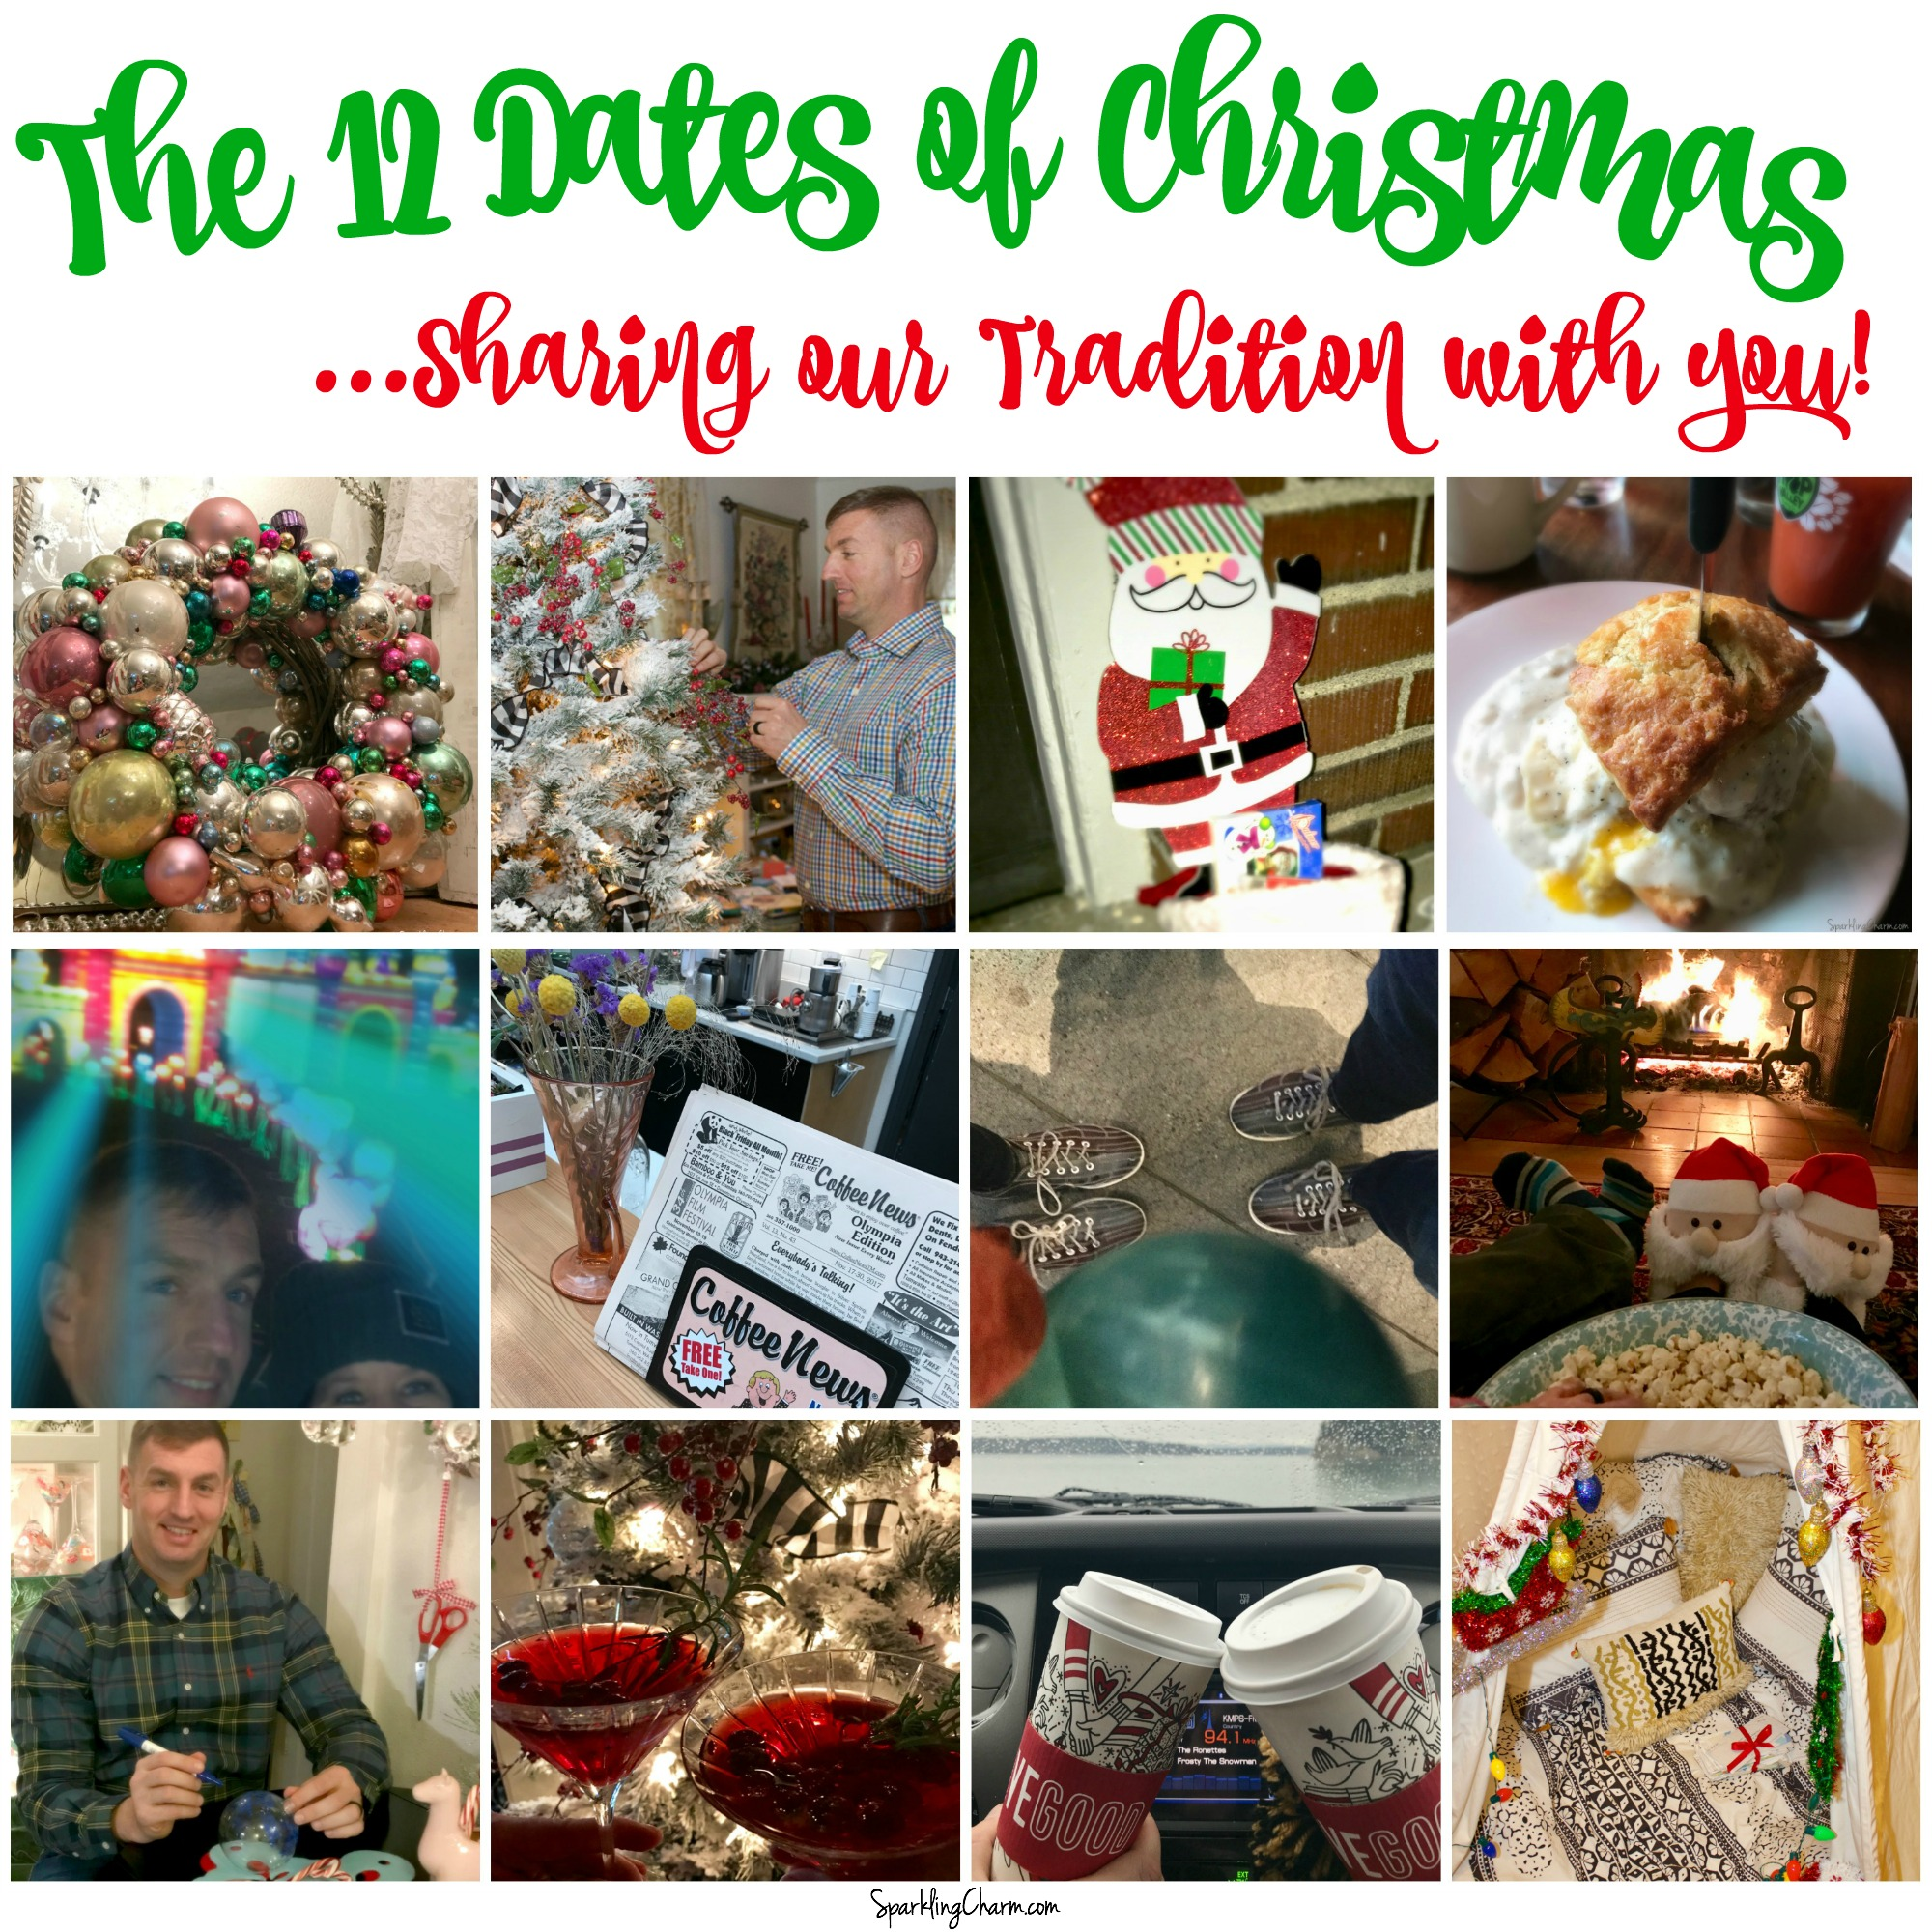 12 Dates Of Christmas.The 12 Dates Of Christmas Sharing Our Tradition With You